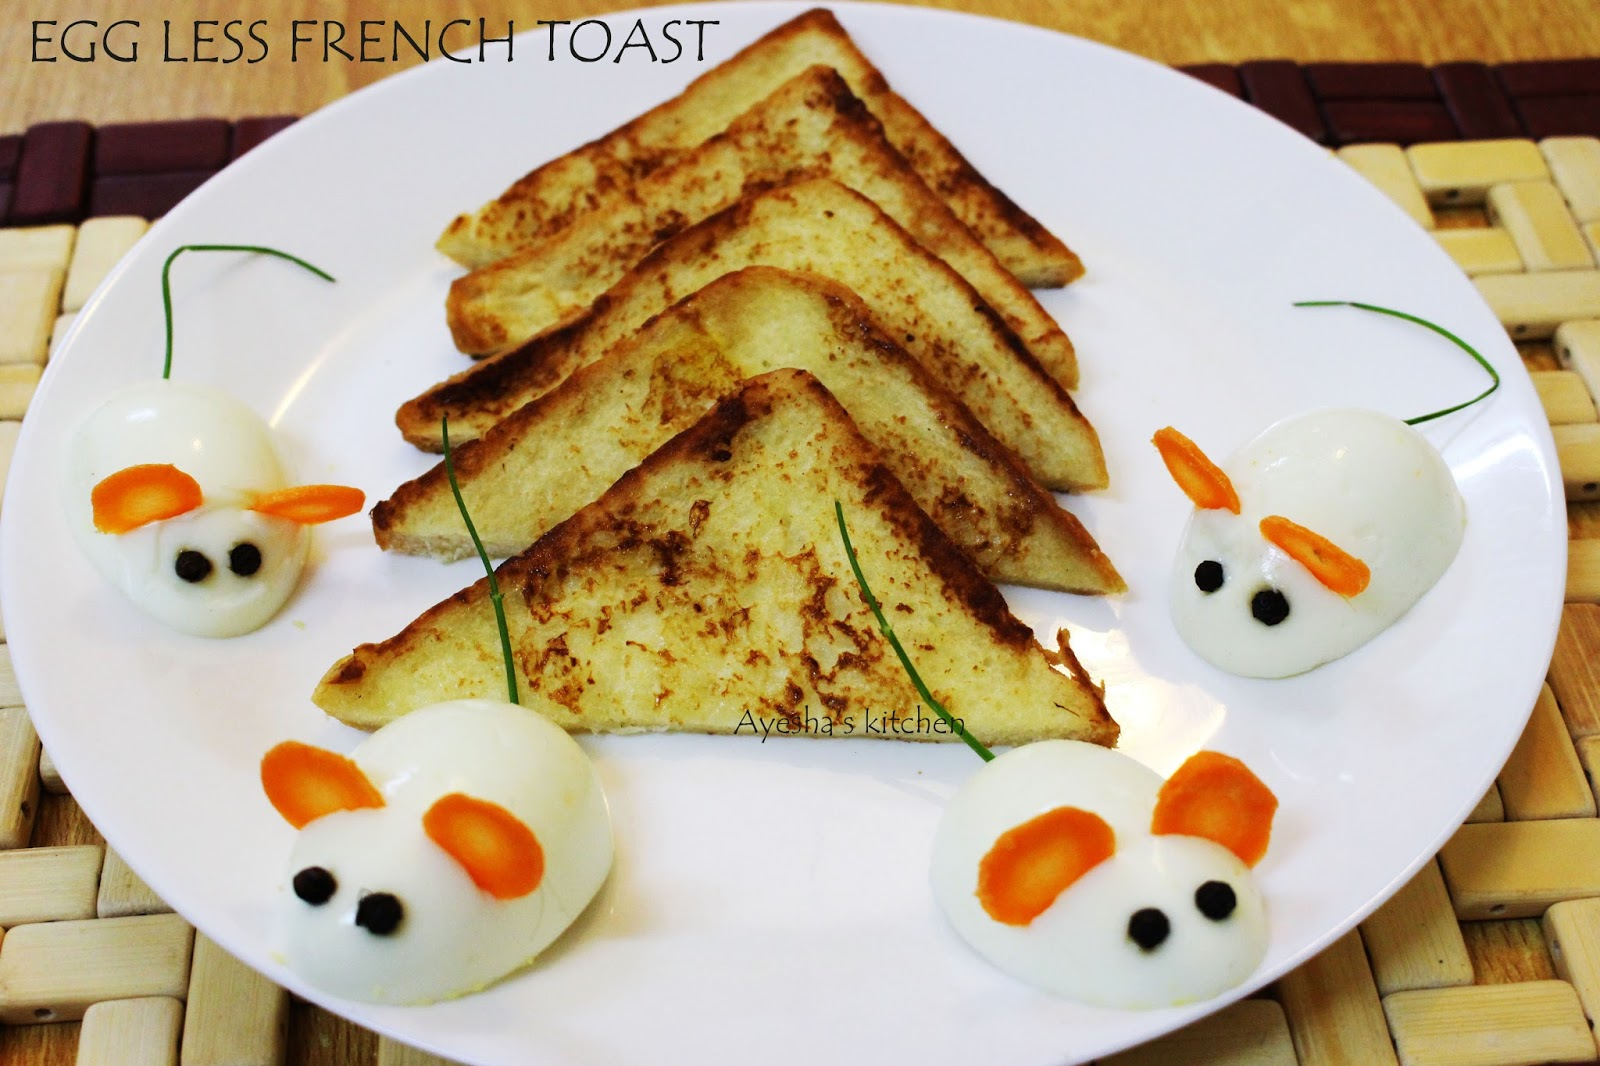 egg less french toast recipe - easy quick breakfast ideas